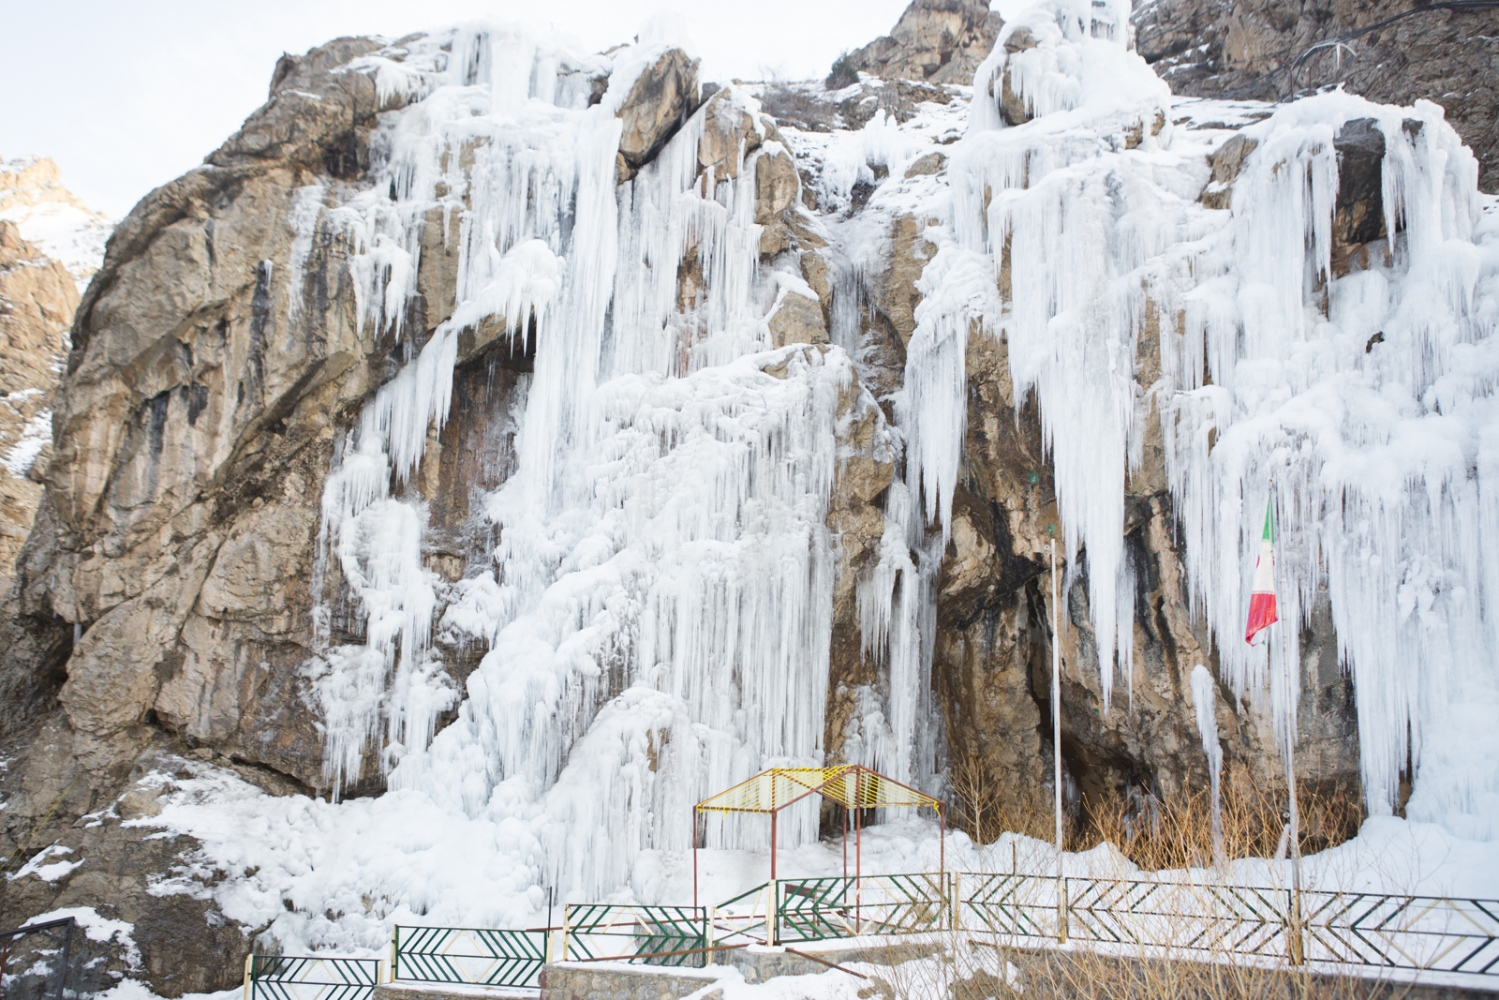 The Hamaloon Ice Wall, formed by the leaking of water brought to the shady Hamaloon Valley from a nearby spring, is a popular destination for rock climbers. Nearby Darbandsar, Alborz Mountains, North of Tehran. January 03, 2015